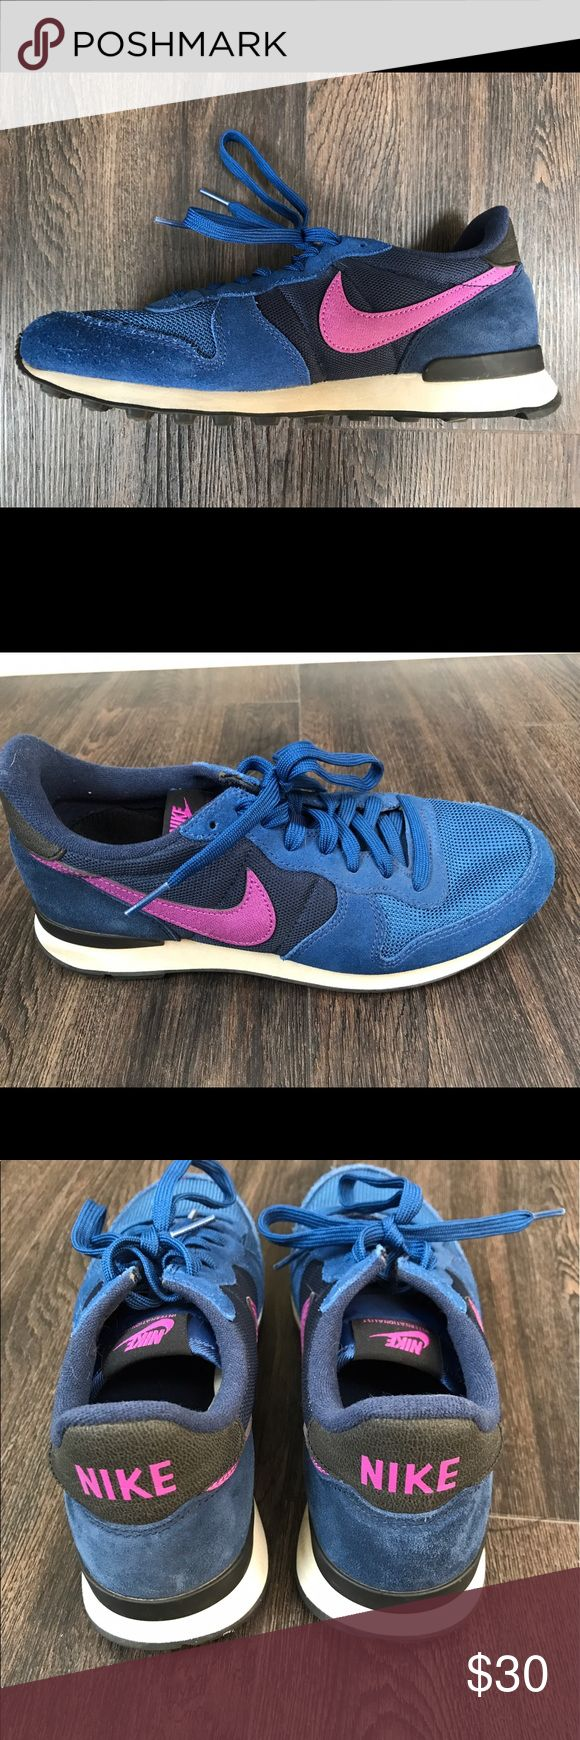 Nike retro sneakers Blue and pink Nike retro style sneakers. They have been worn several times but are in great condition. I do not have the box. Nike Shoes Athletic Shoes